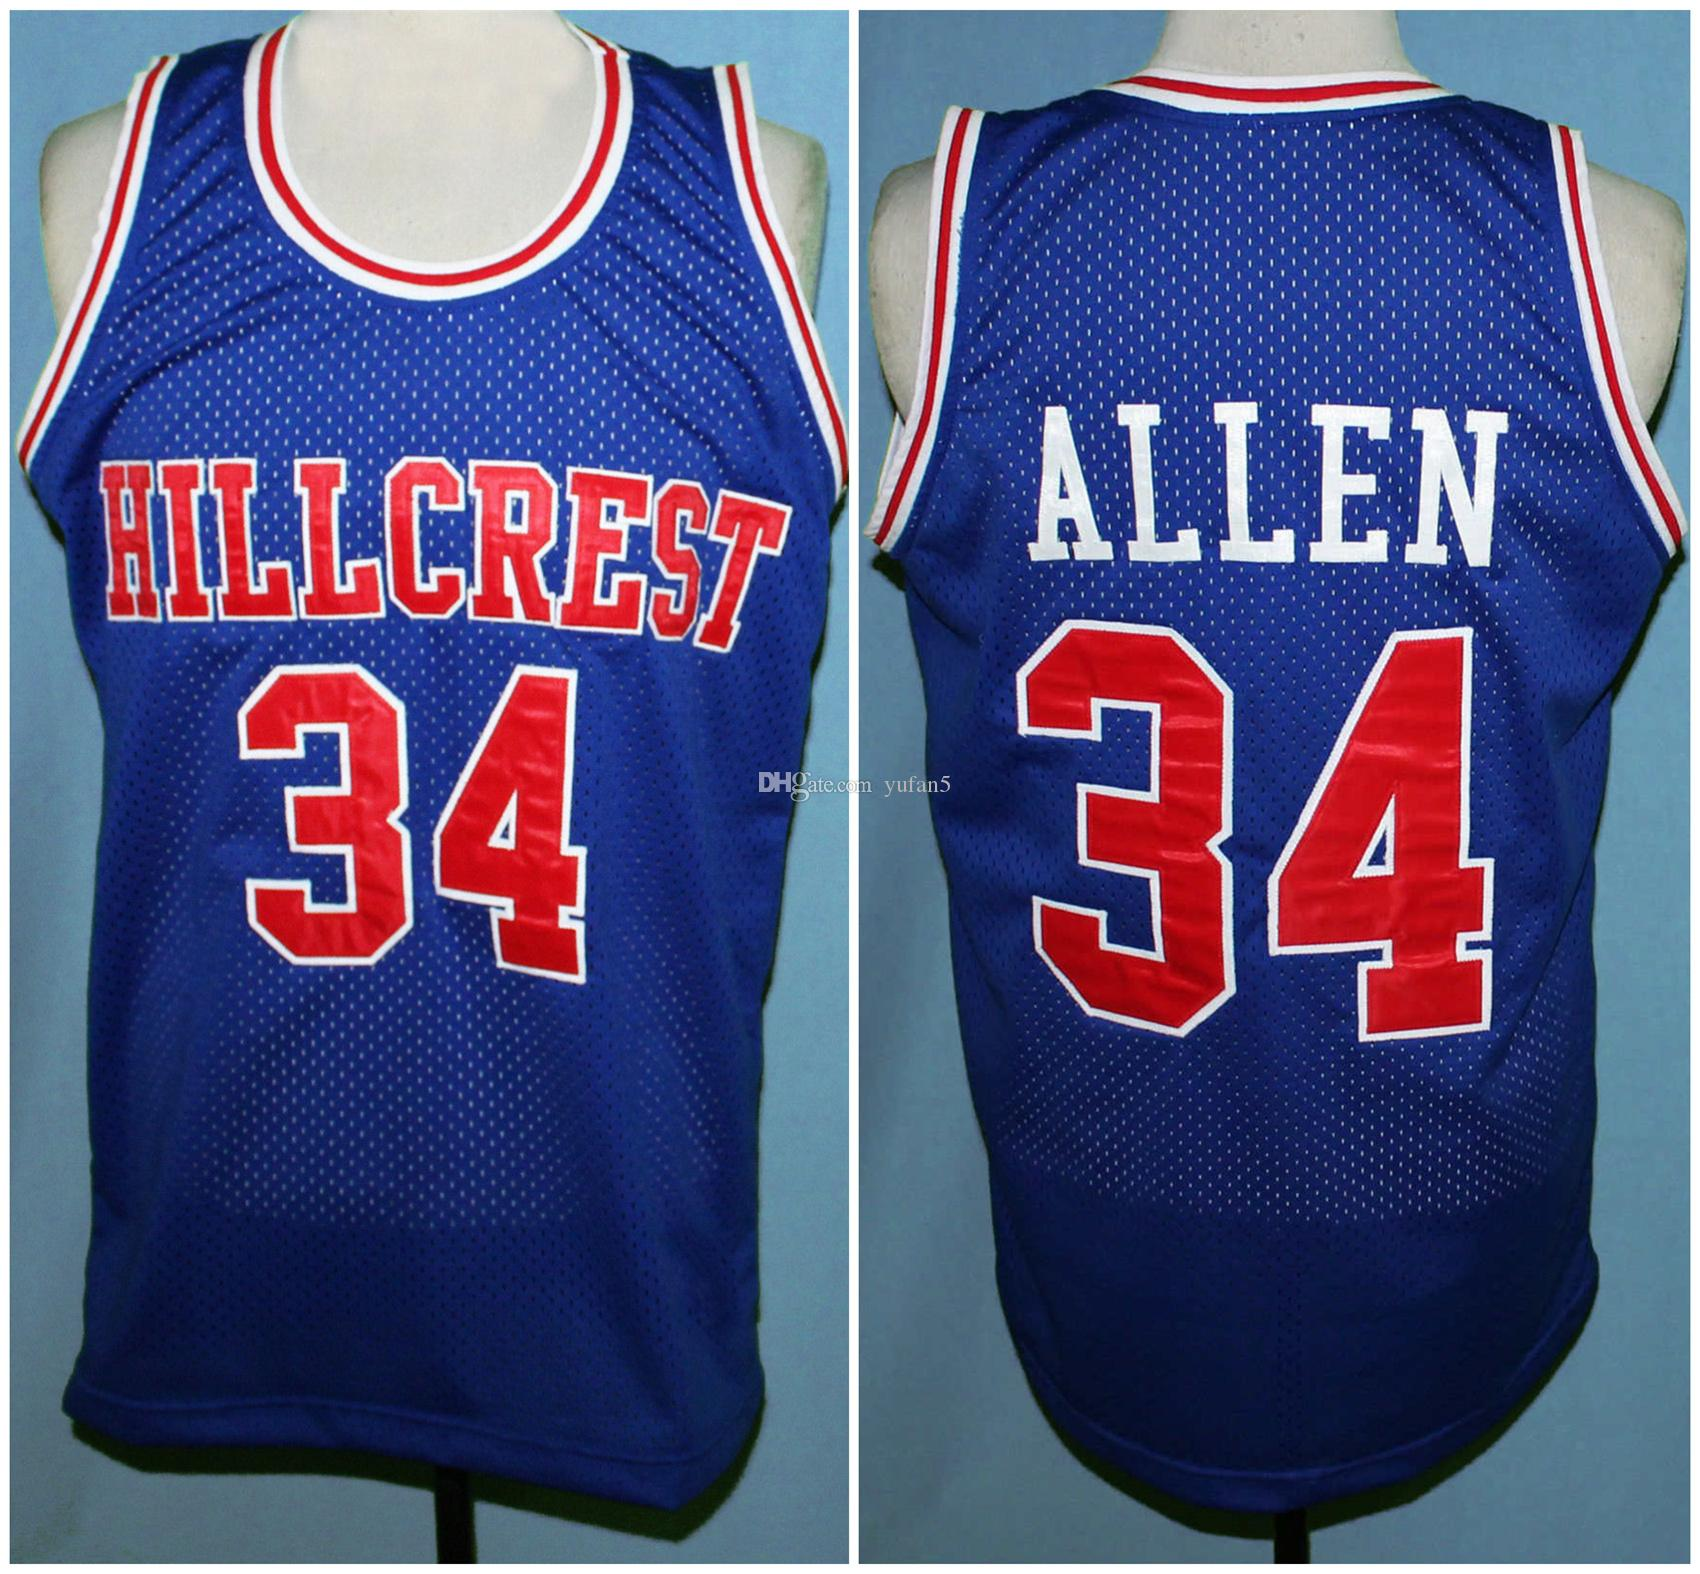 separation shoes 66426 ba8ad ray allen high school jersey